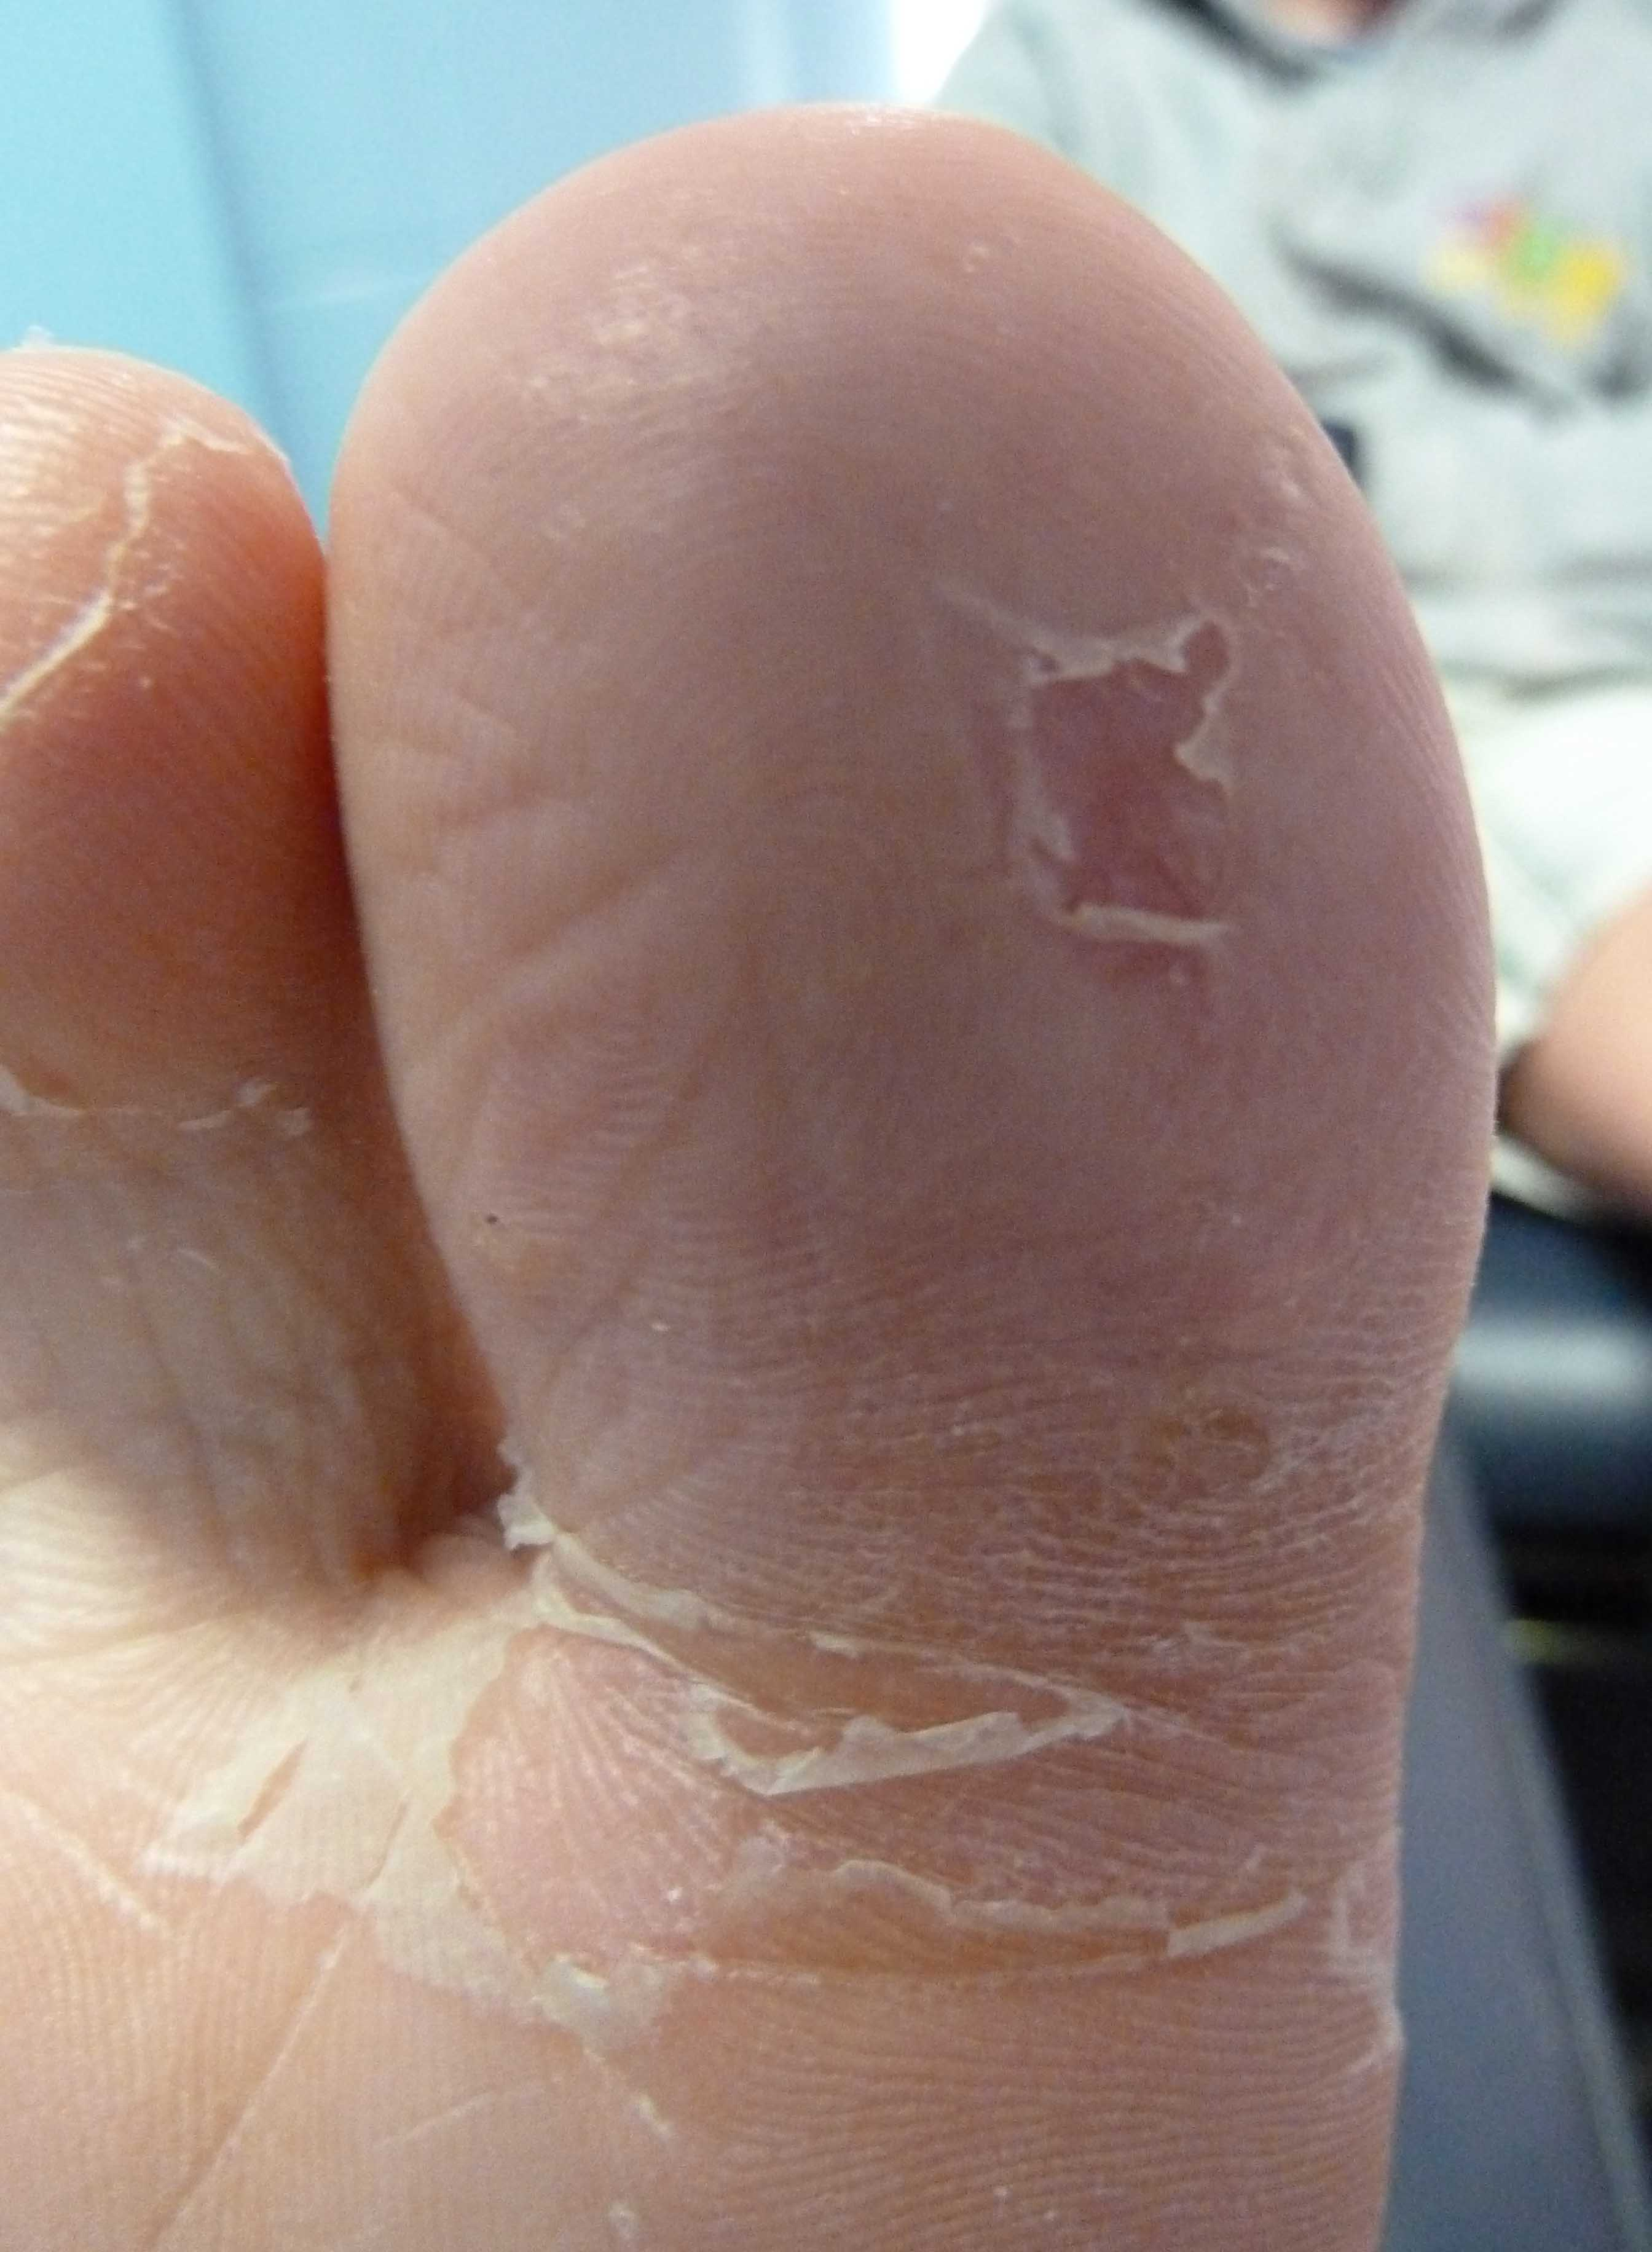 Warts and Plantar Warts -Topic Overview - WebMD